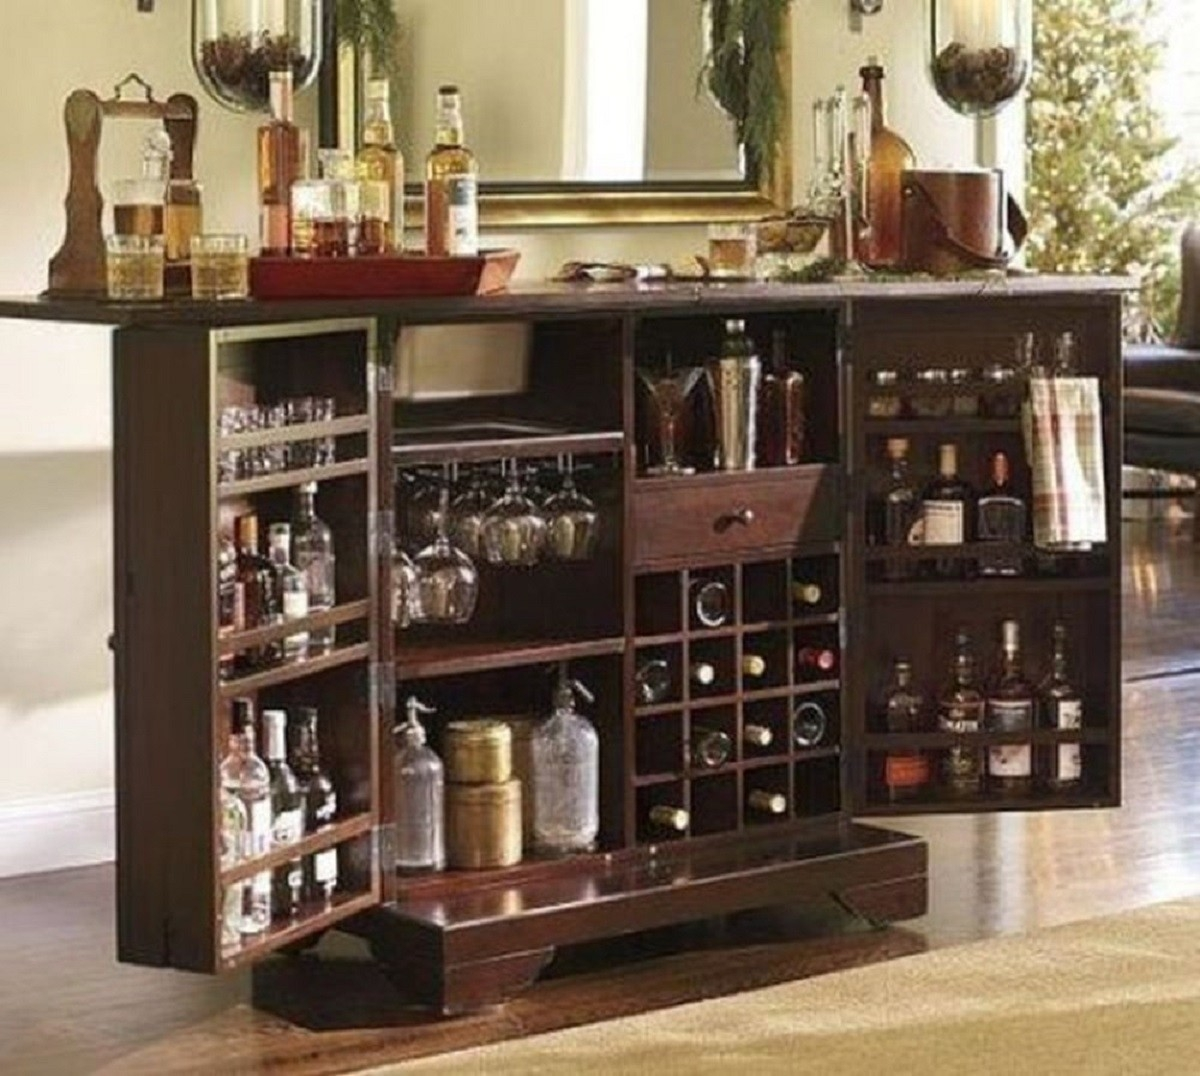 Fold Out Bar Cabinet Ideas On Foter